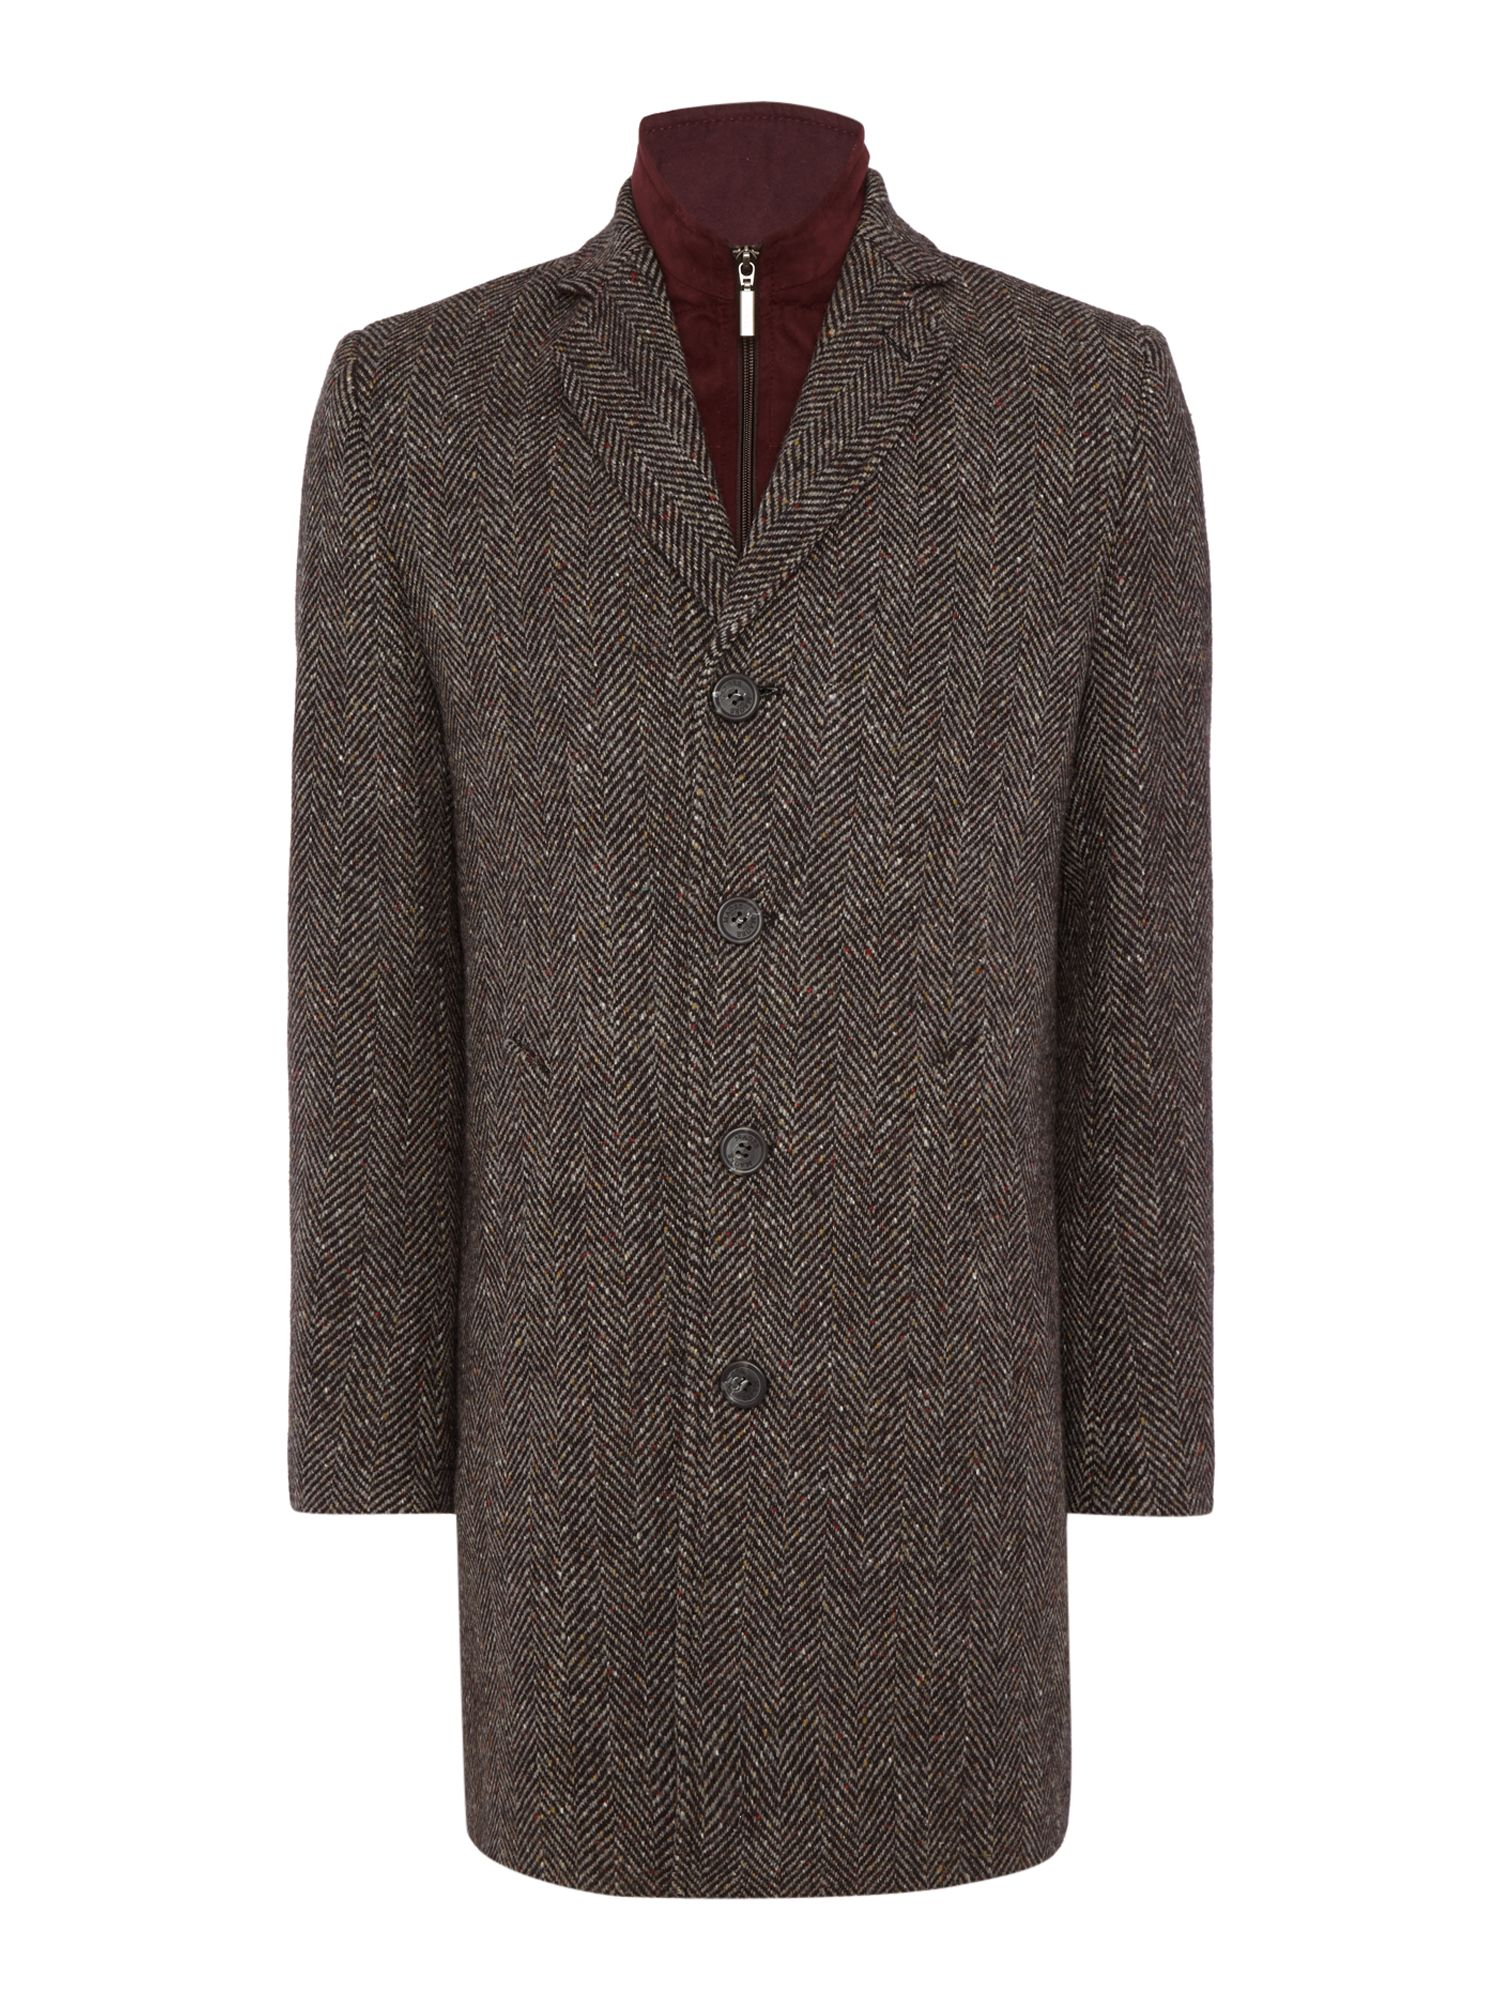 Men's Vintage Style Coats and Jackets Mens Magee Magee tweed overcoat £465.00 AT vintagedancer.com